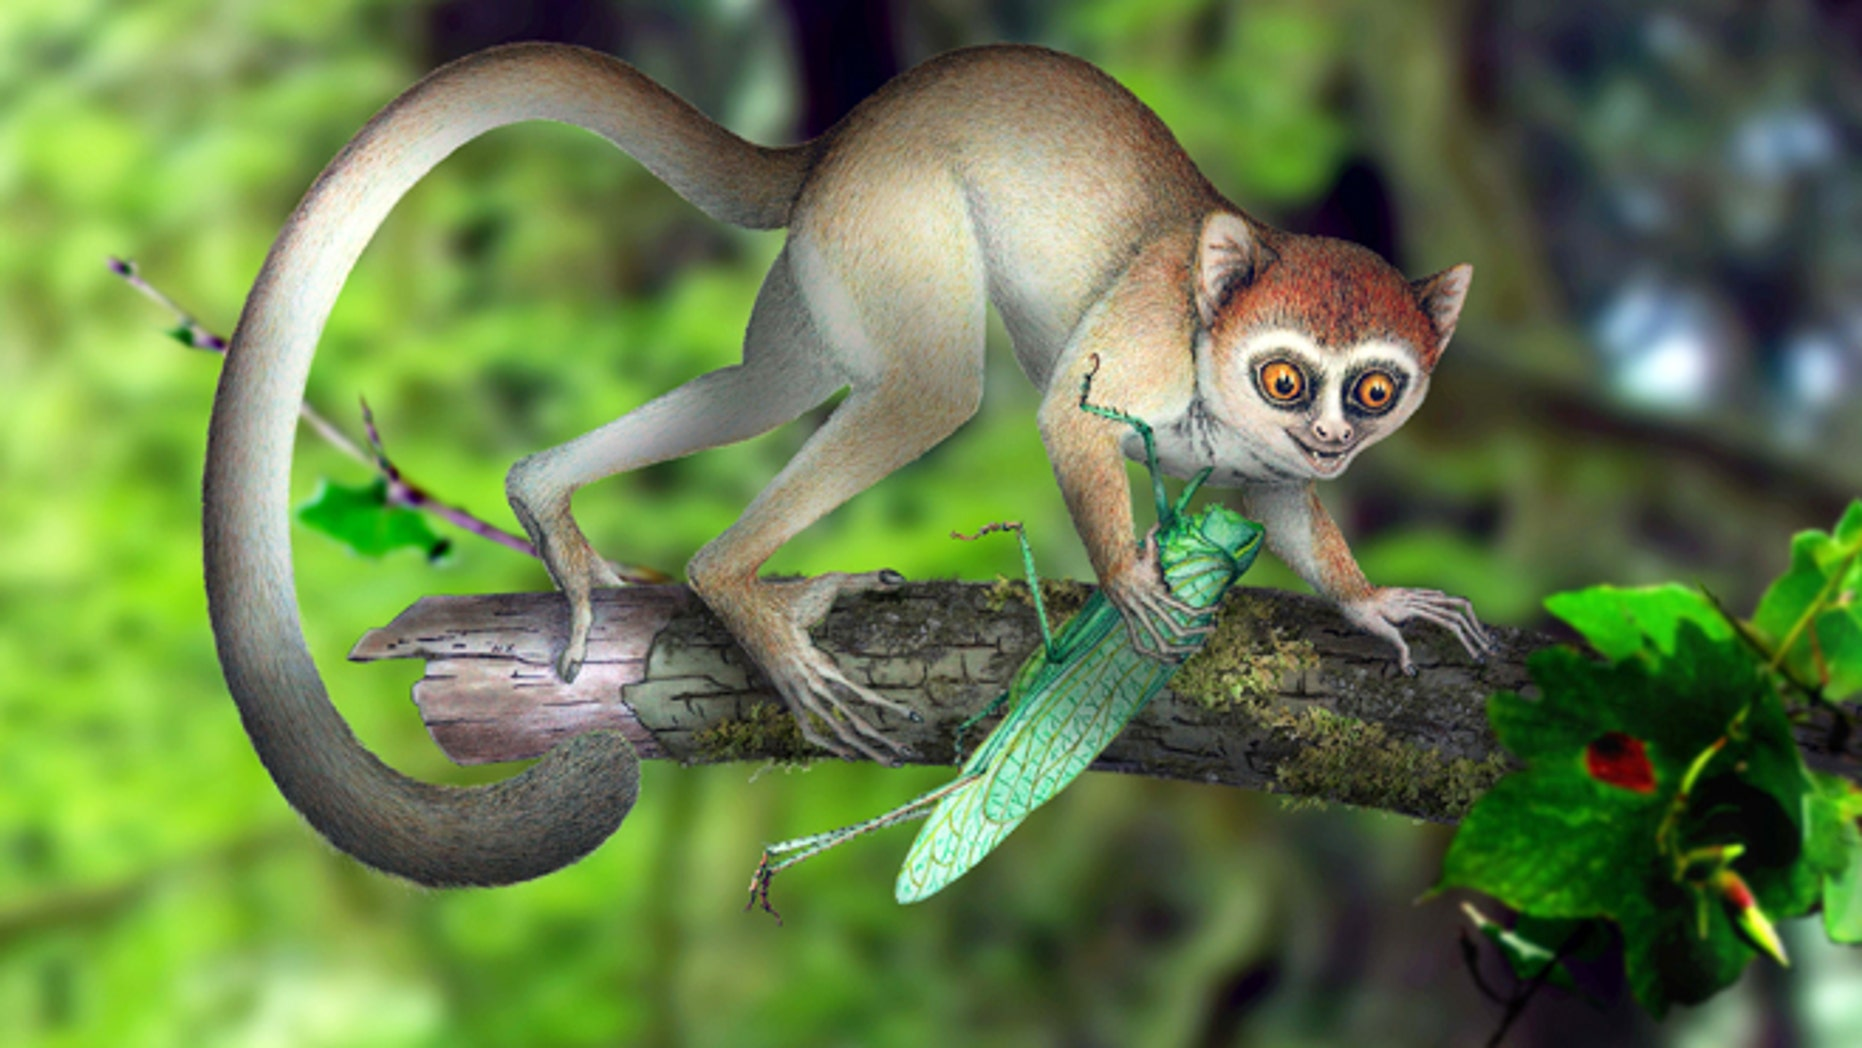 A reconstruction of Archicebus achilles in its natural habitat of trees. One of our earliest primate relatives was a hyperactive wide-eyed creature so small you could fit a few of them in your hand, if they would just stay still long enough, new fossil evidence shows.